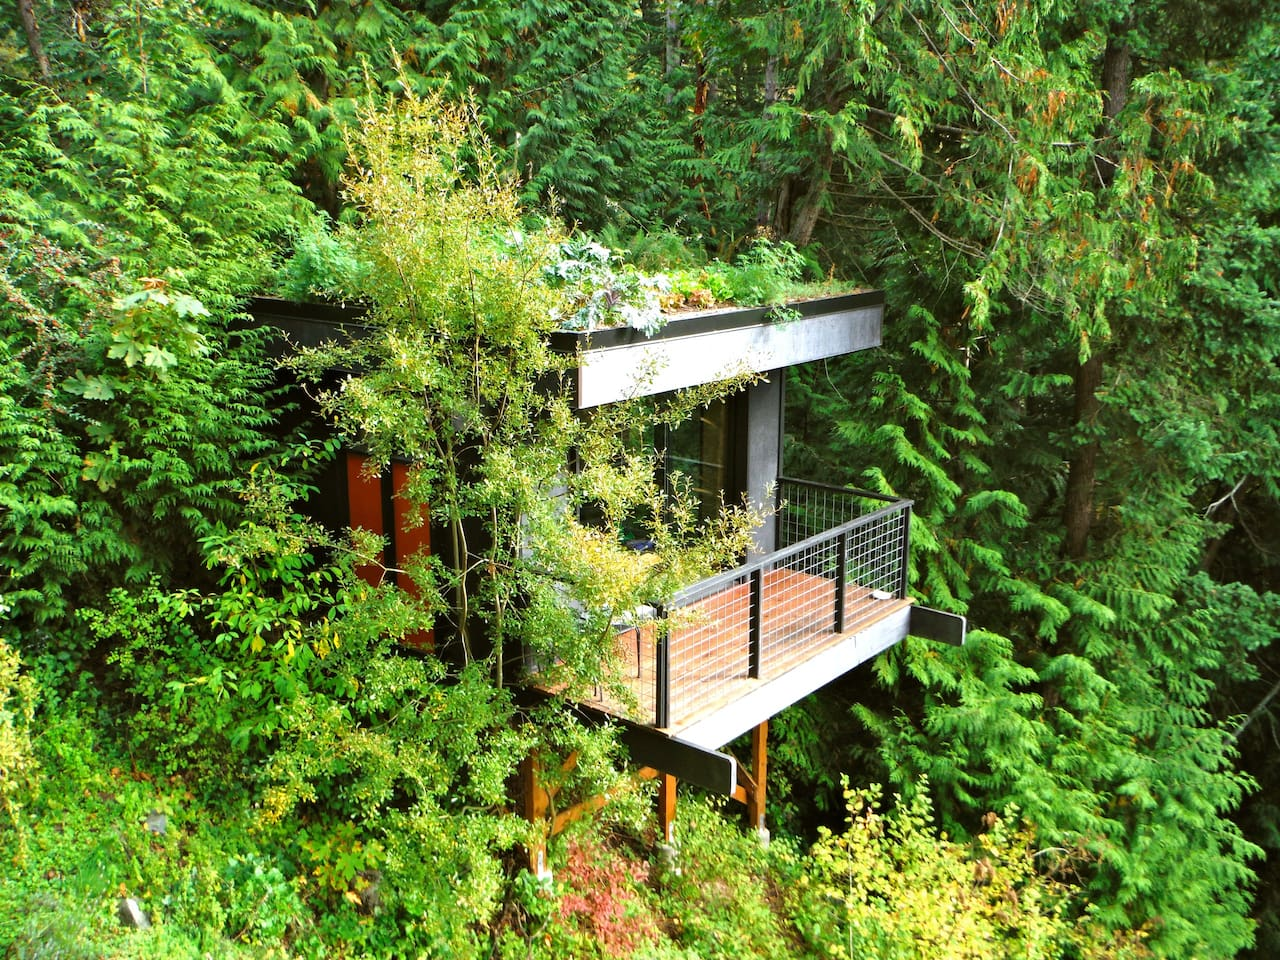 1556876277 633 15 amazing treehouse rentals take you off the grid in style - 15 Amazing Treehouse Rentals Take You Off The Grid In Style